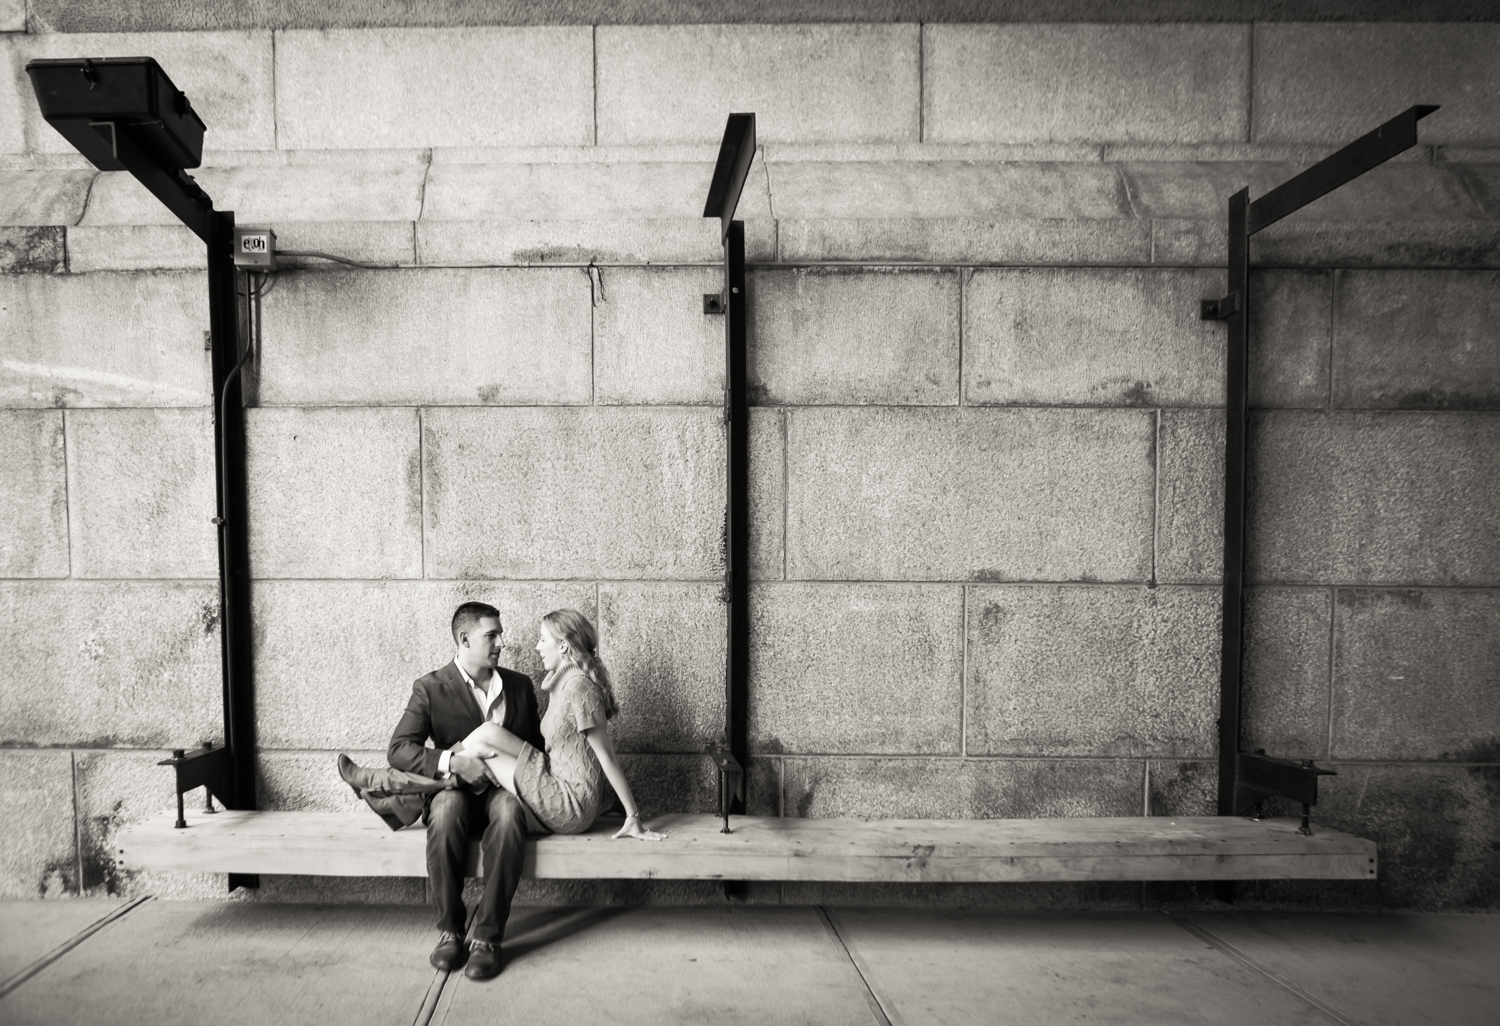 Black and white photo of woman sitting on bench with legs in man's lap